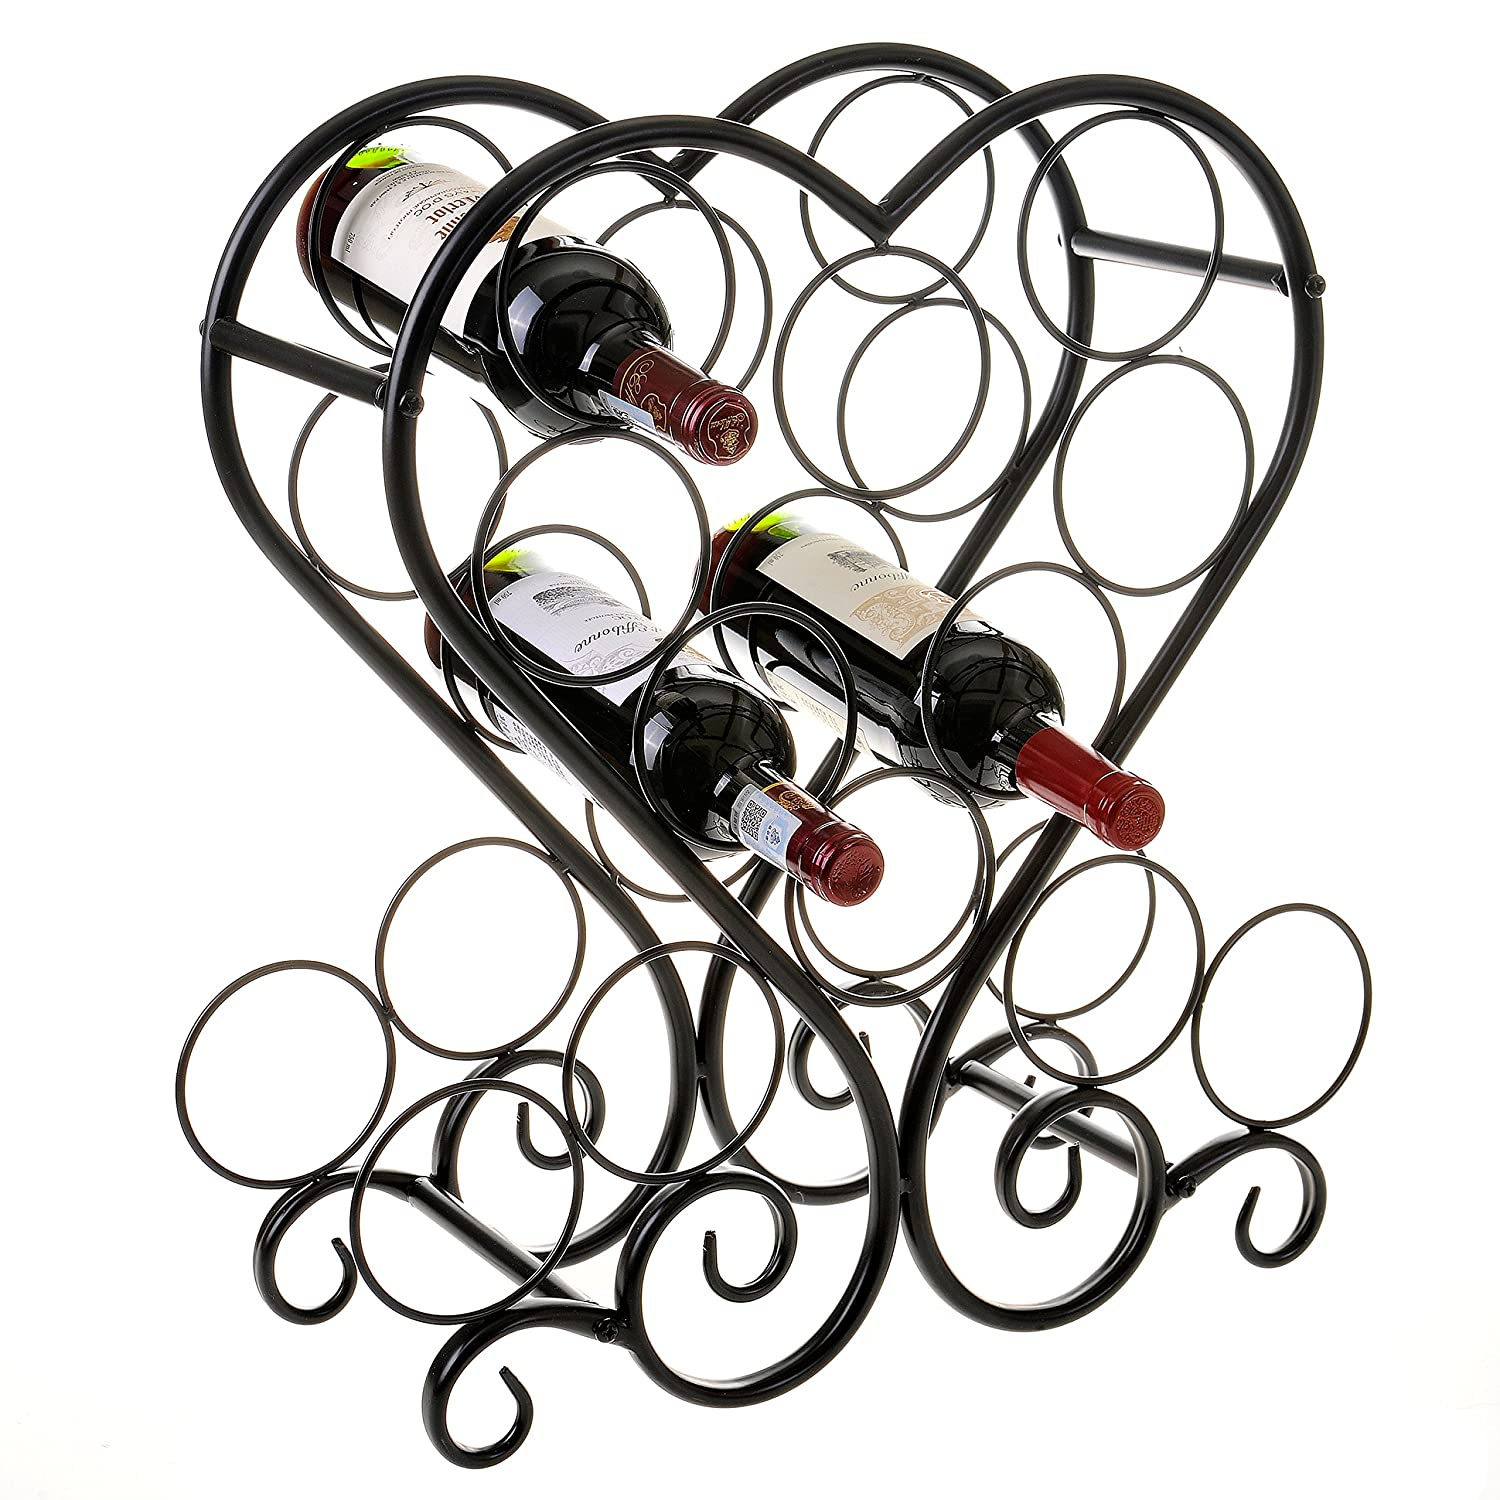 12-Bottle Metal Heart-Shaped Countertop Wine Rack Holder with Scrollwork Design MyGift